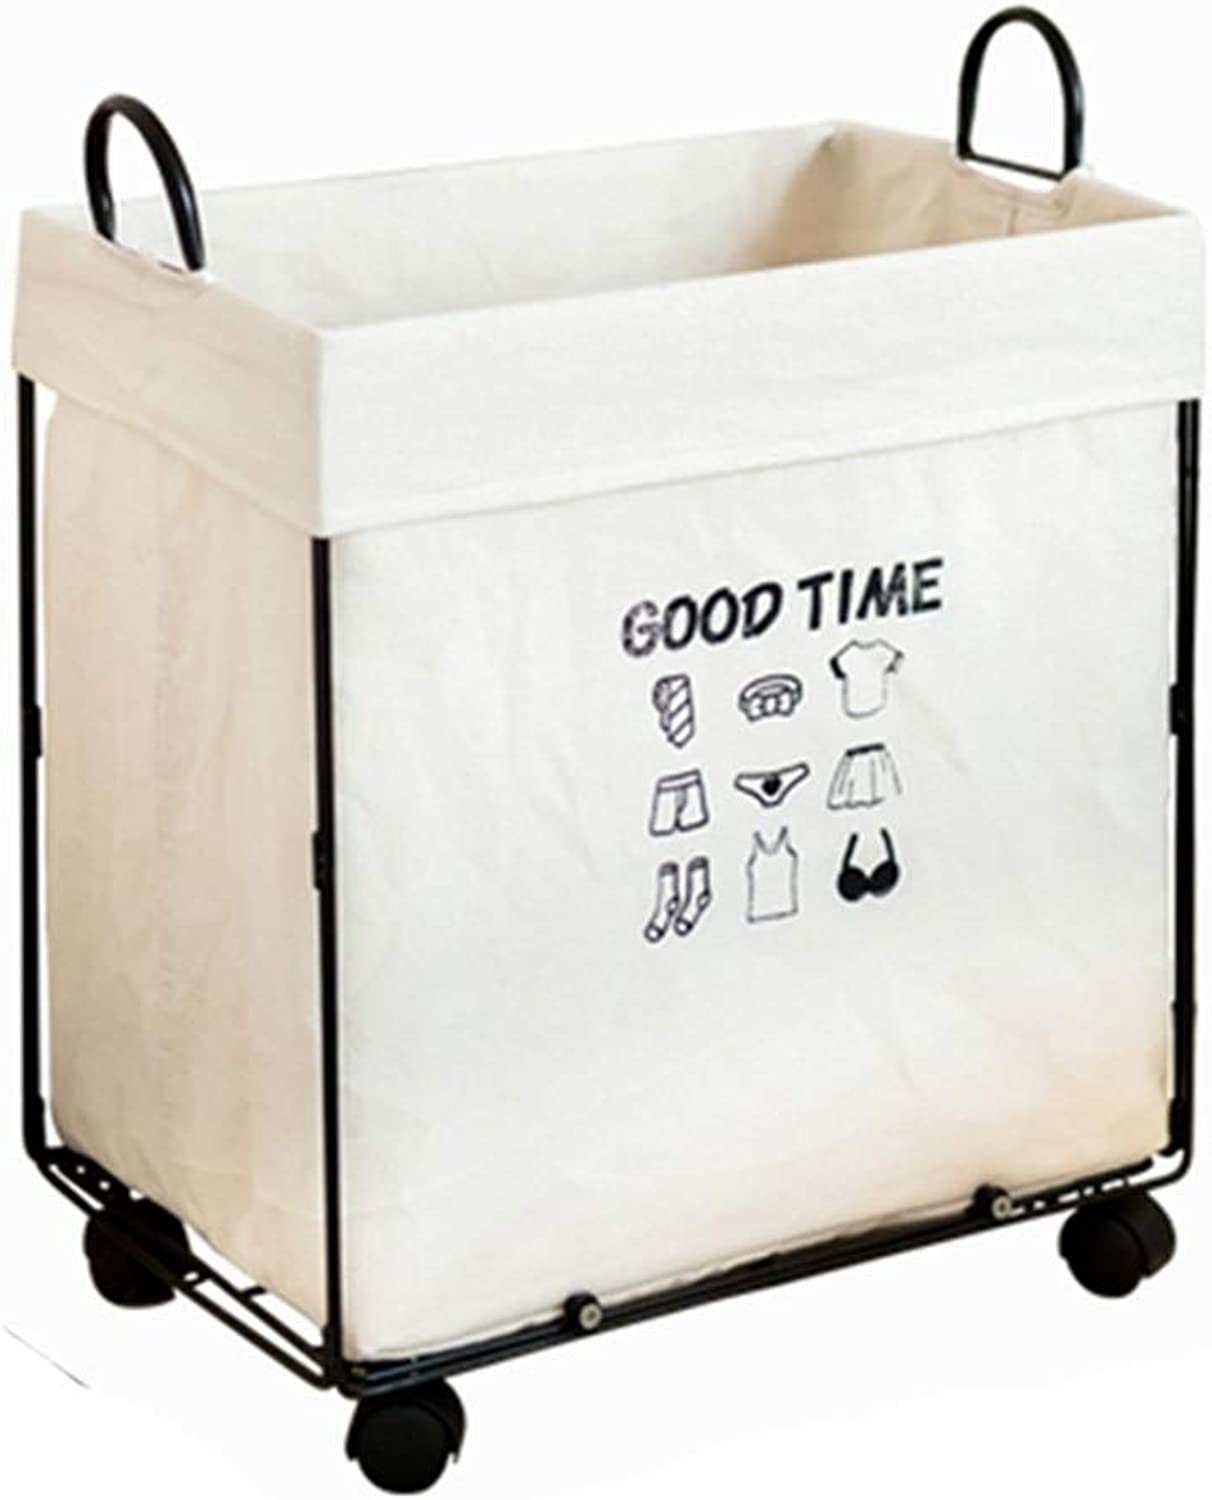 ZHANGQIANG Storage Basket Laundry Basket Iron Hamper Extra Large Nordic Style Metal Storage Basket with Wheels Bathroom Storage Barrel Industrial Wind (color   White Without Cover, Size   A)